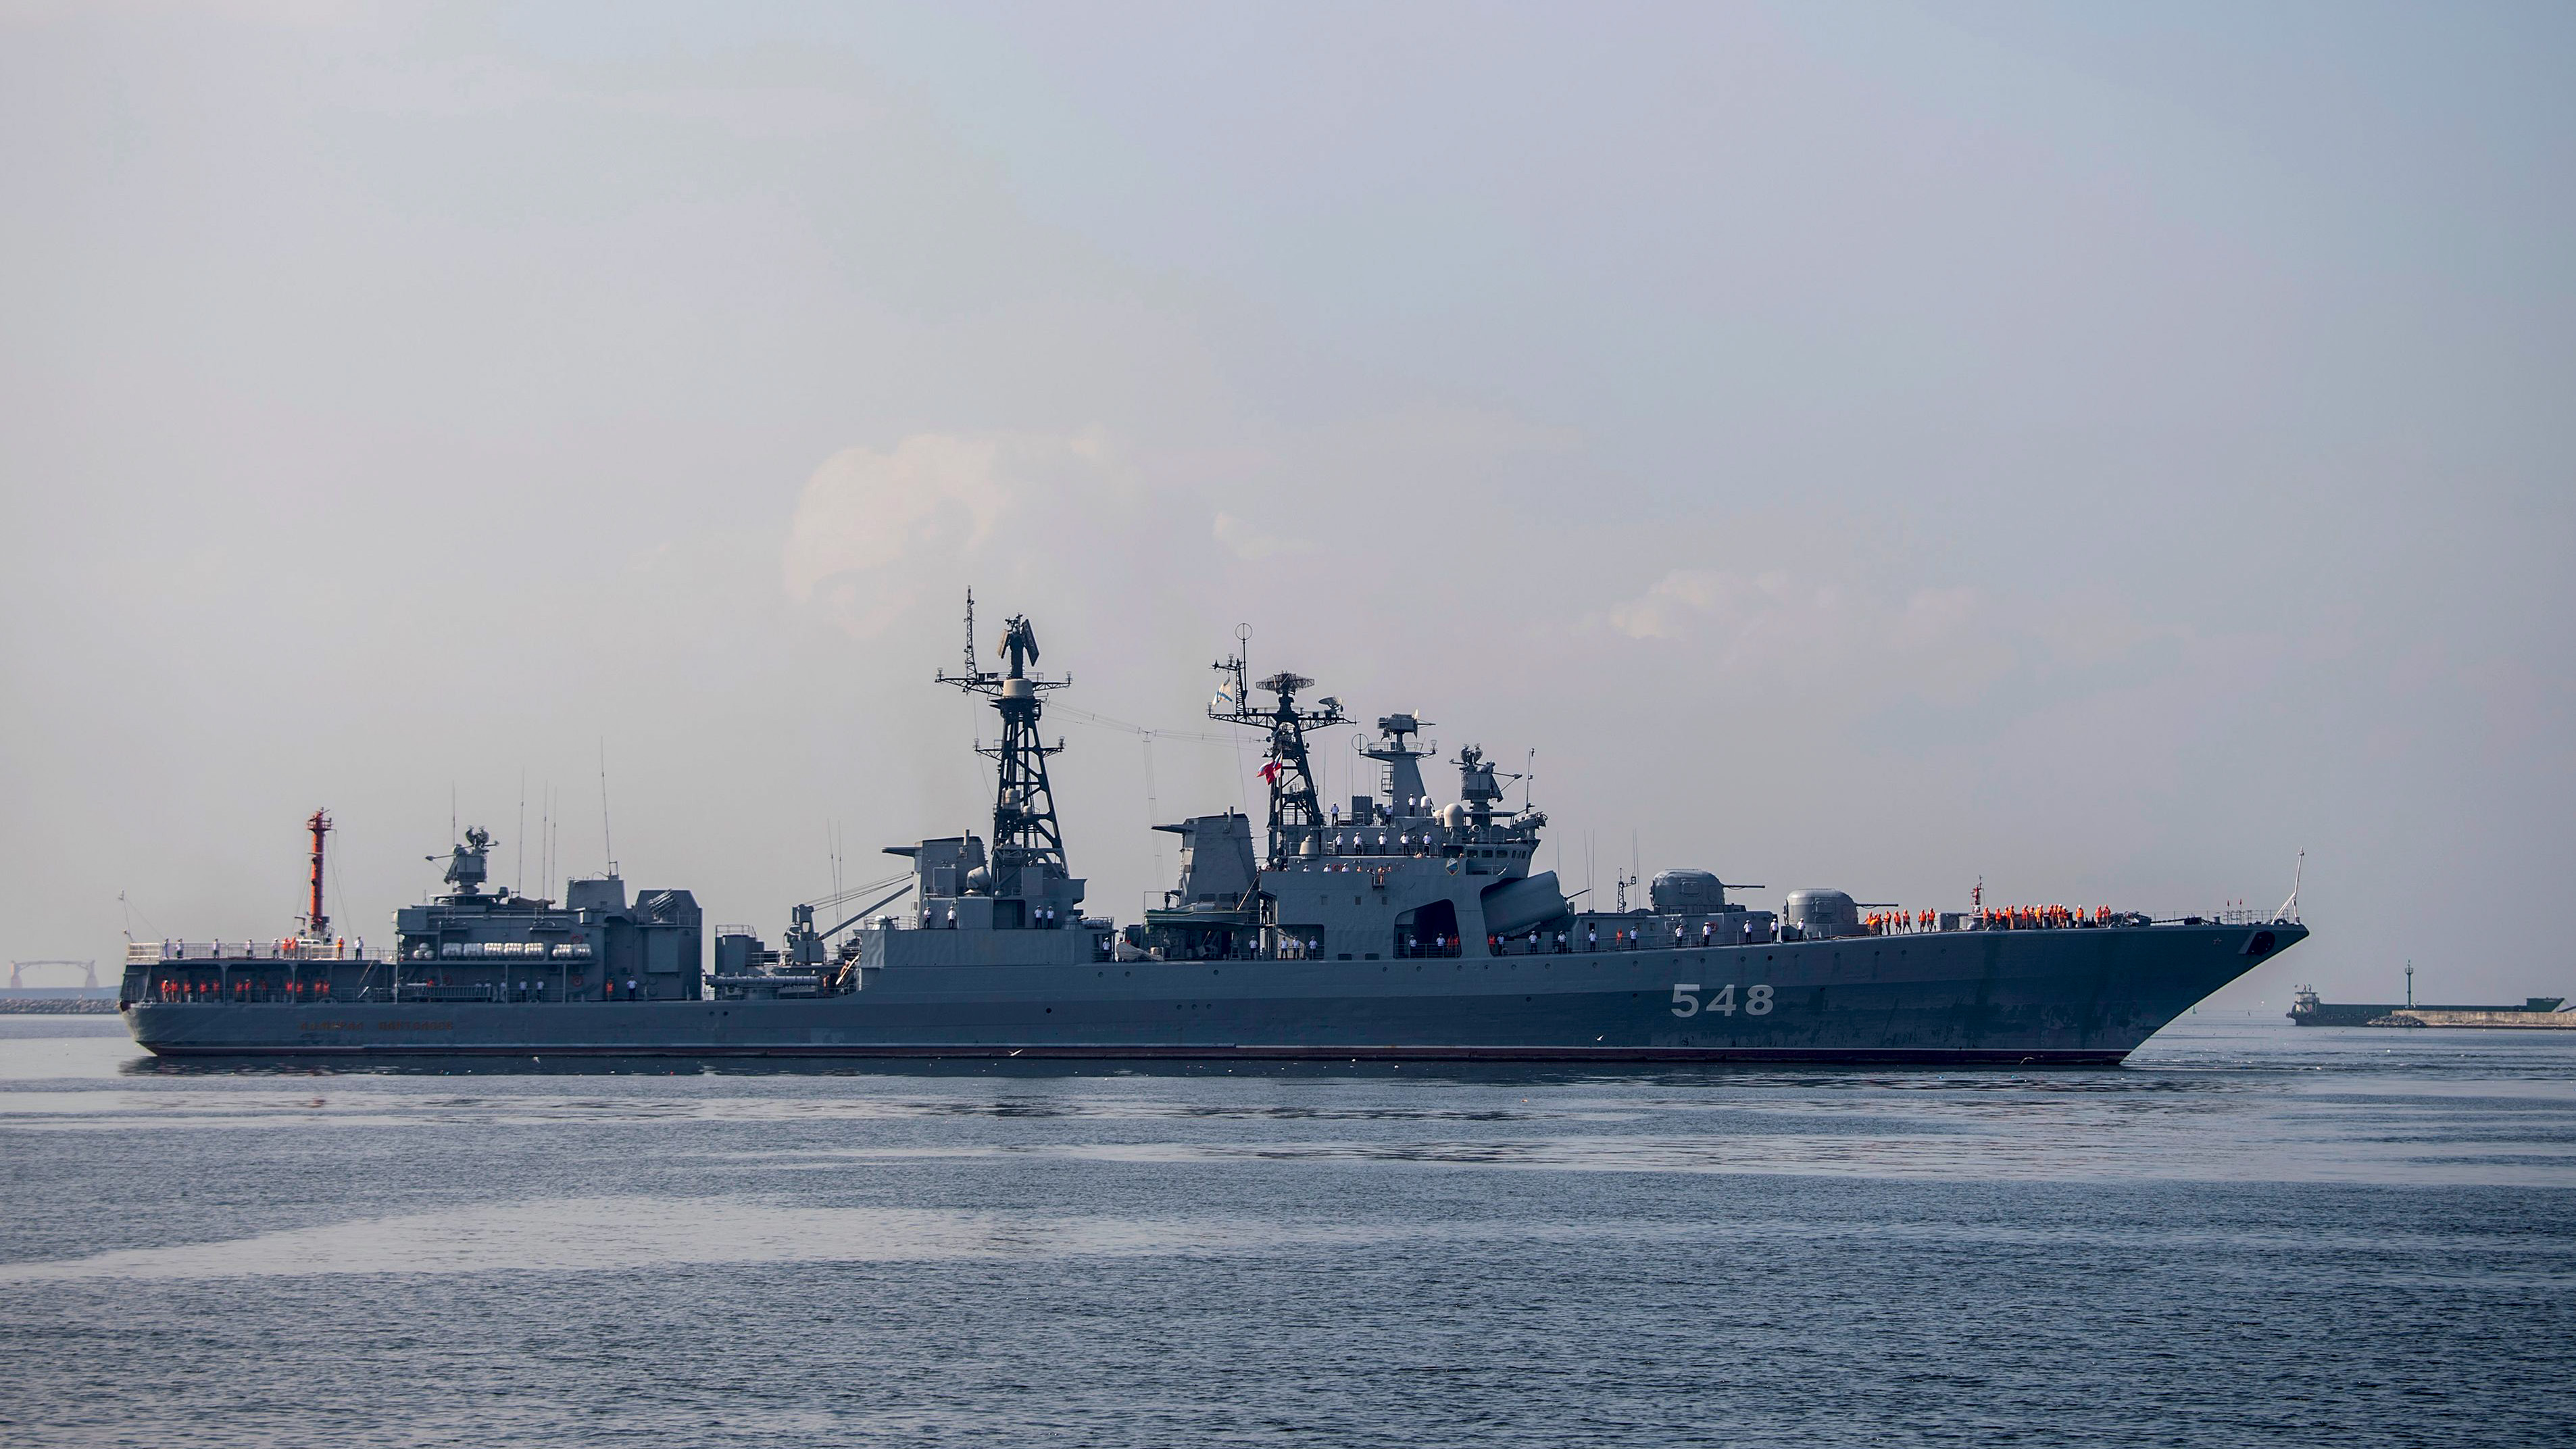 The Russian Navy large anti-submarine ship Admiral Panteleyev arrives at the port in Manila on January 6, 2019 for a five-day goodwill visit to the Philippines. (NOEL CELIS/AFP/Getty Images)